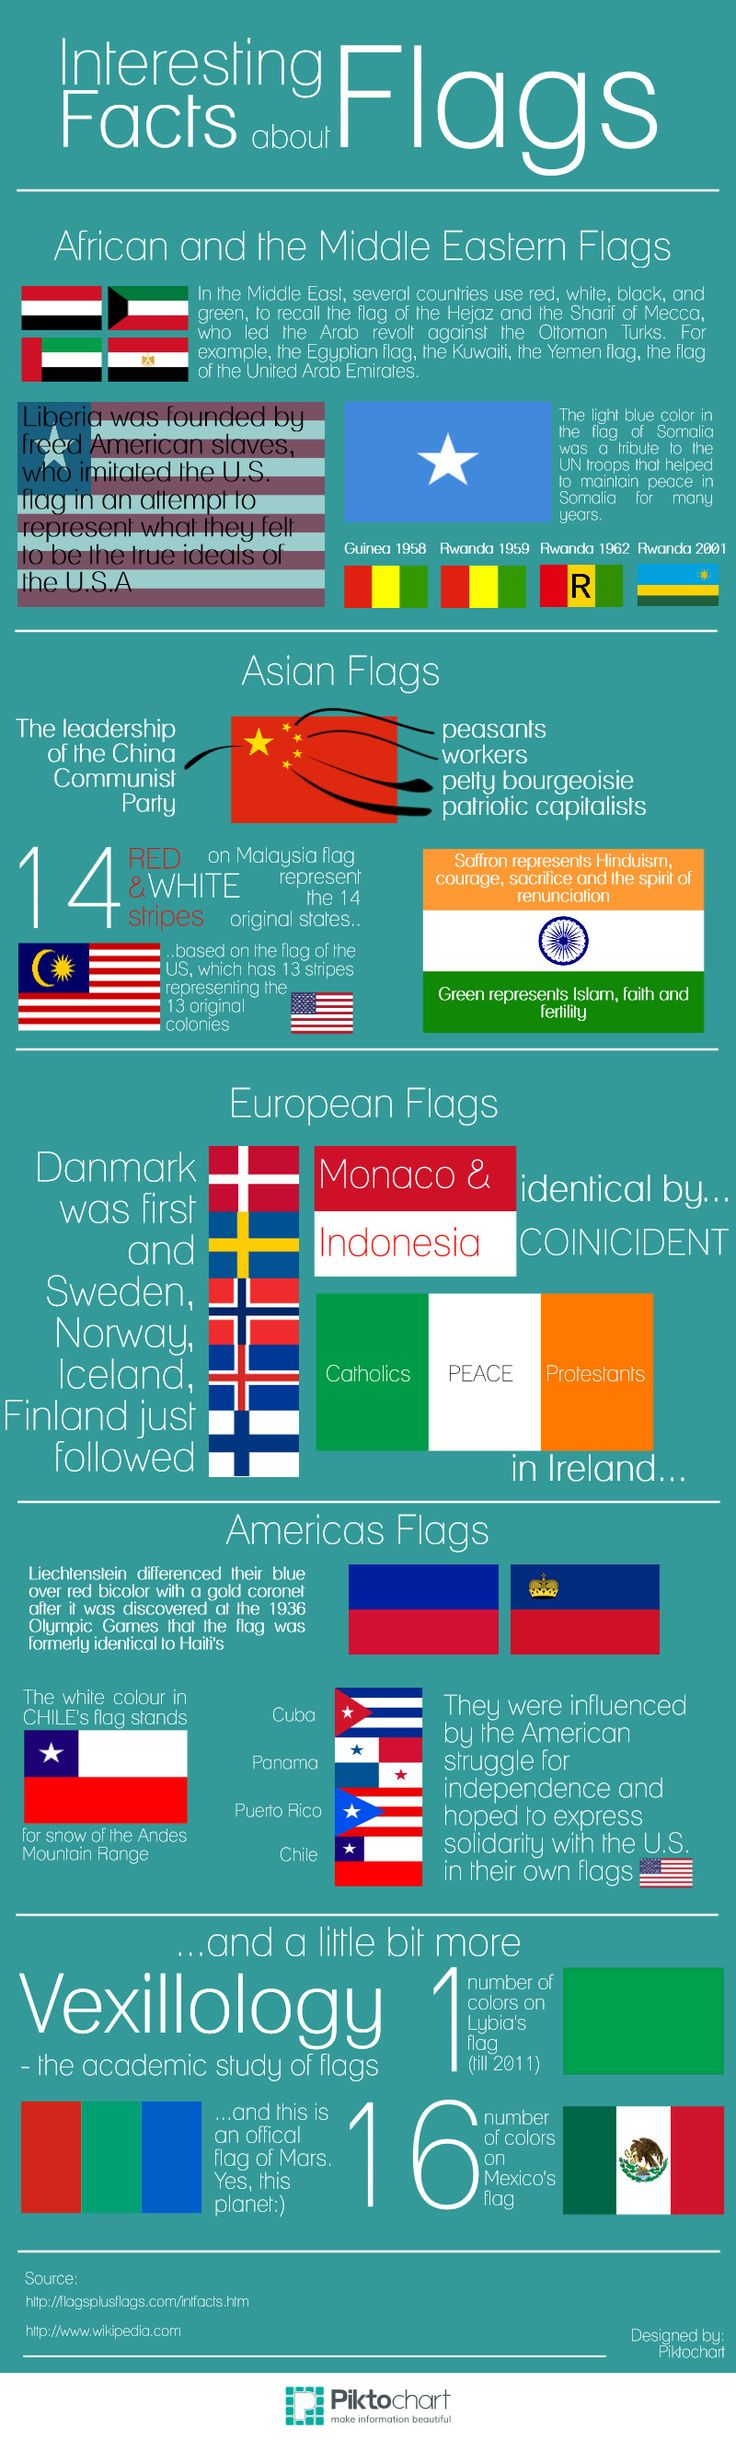 Interesting facts About Flags (Infographic)